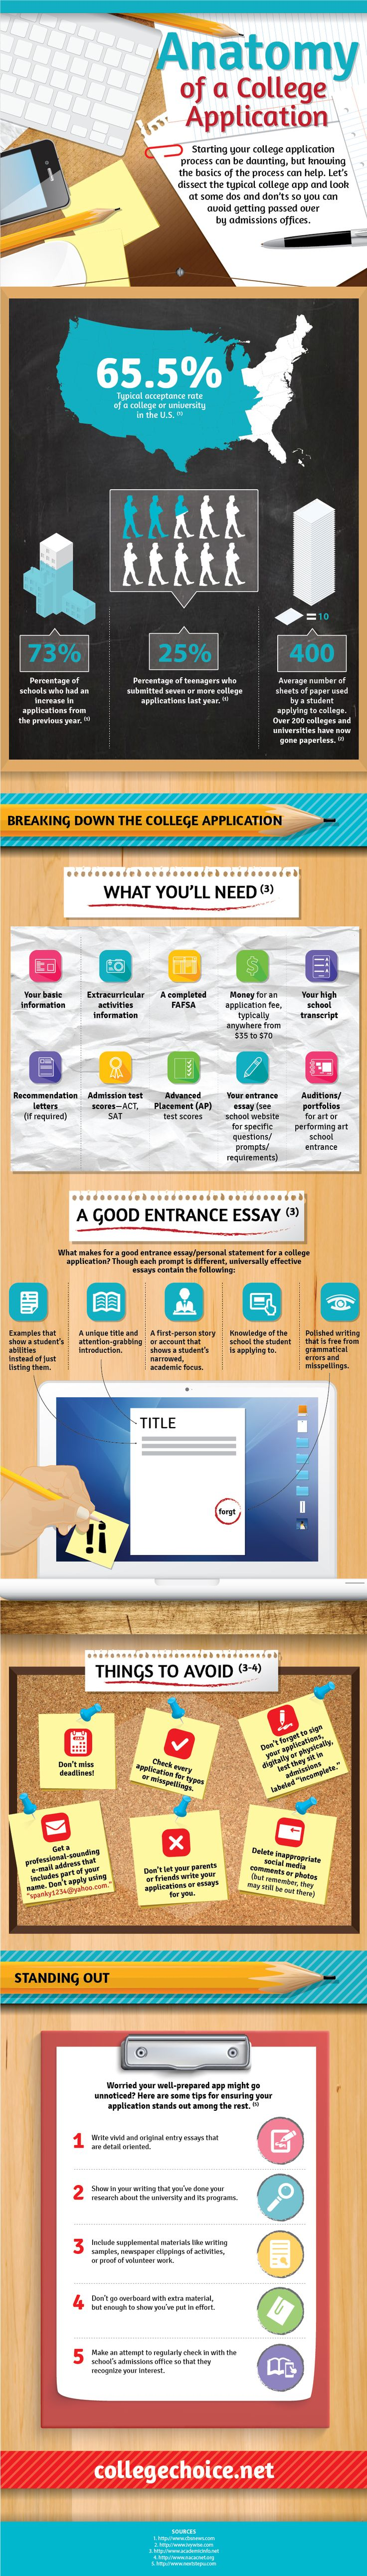 best ideas about college application essay my supreme ordeal is my college application process this will affect the rest of my life and is very important i chose this pin because i believe it will